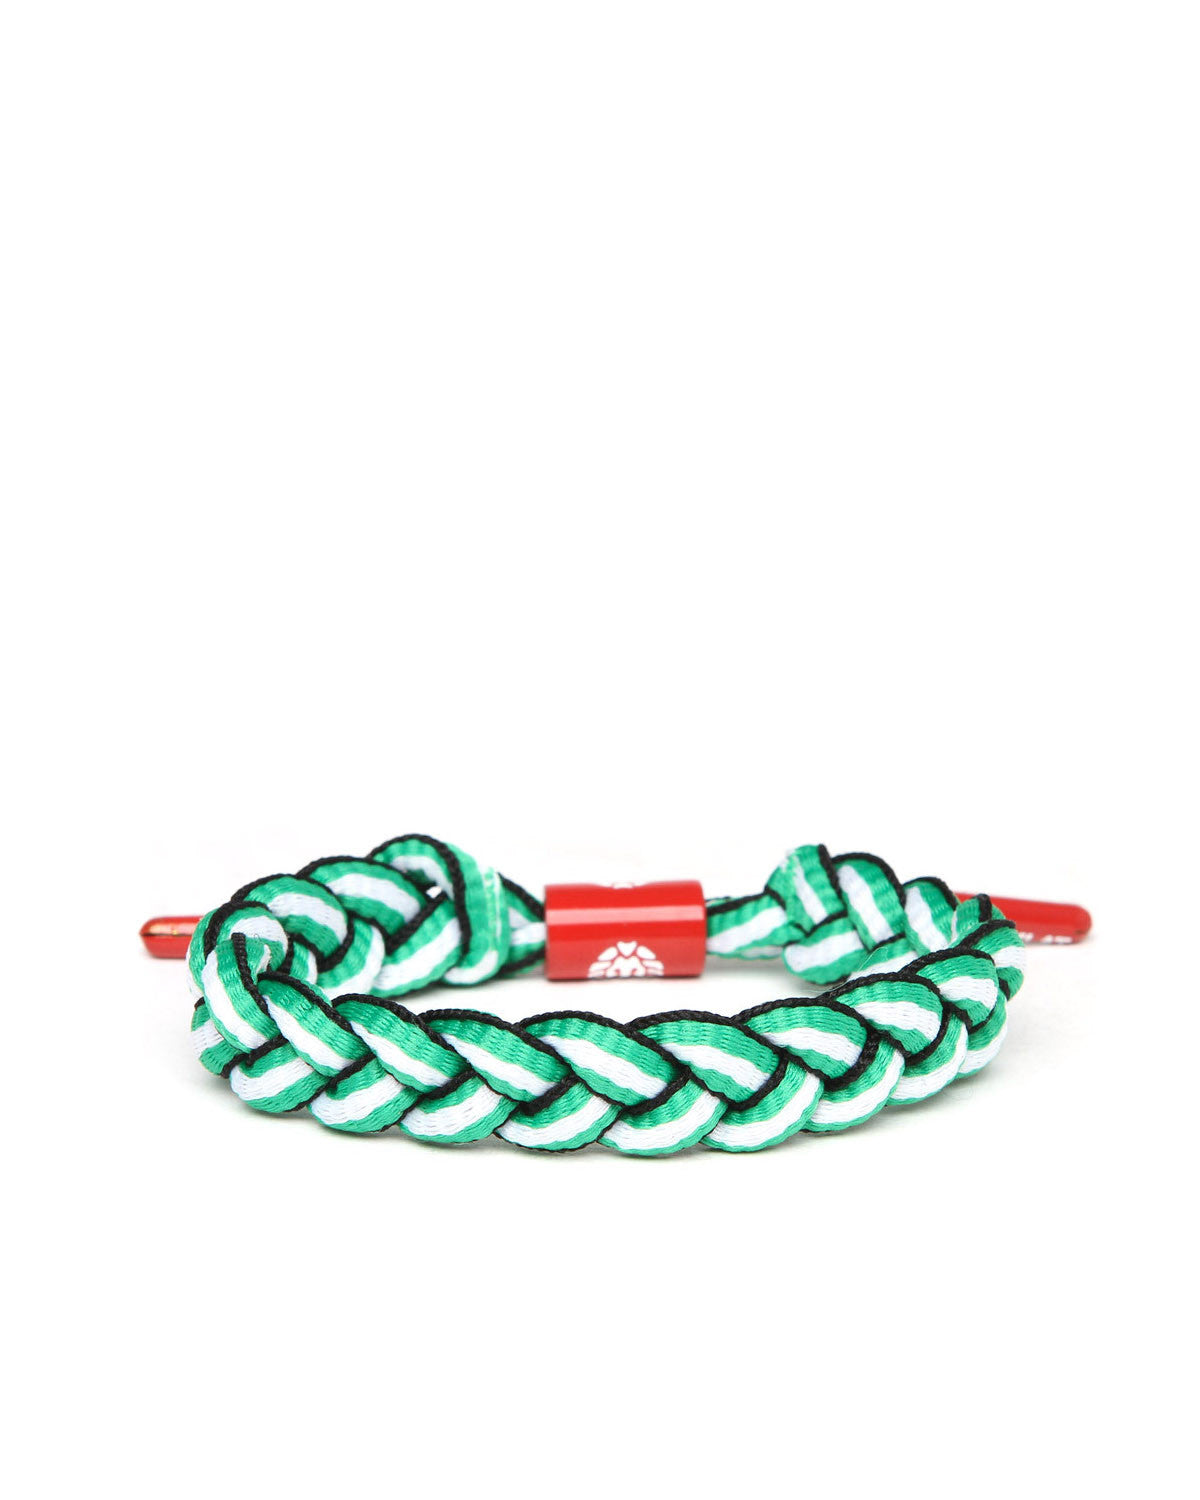 St. Patty Shoelace Bracelet (Green/Red/White)